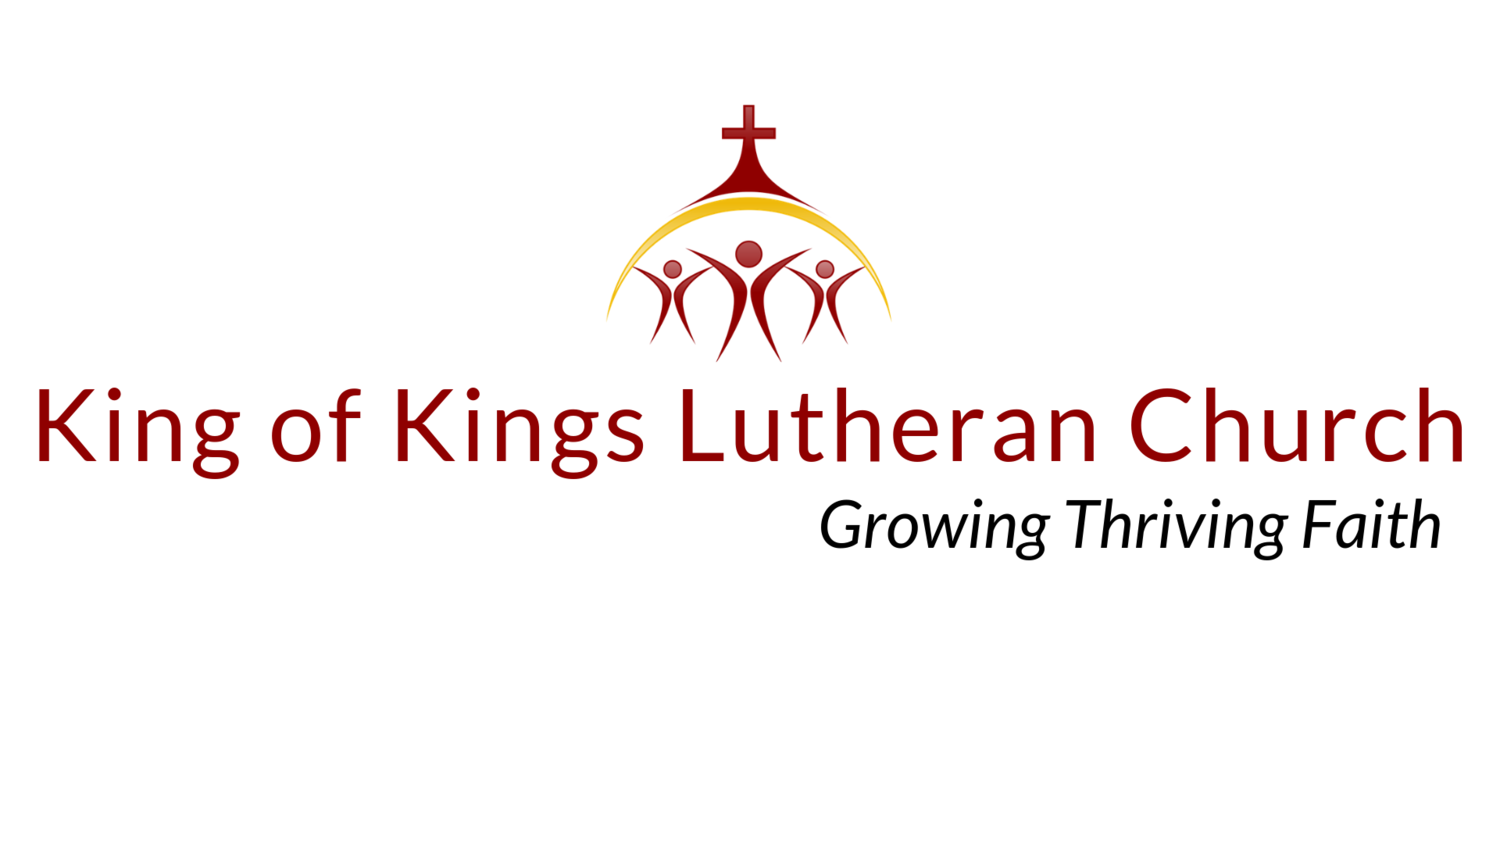 King of Kings Lutheran Church